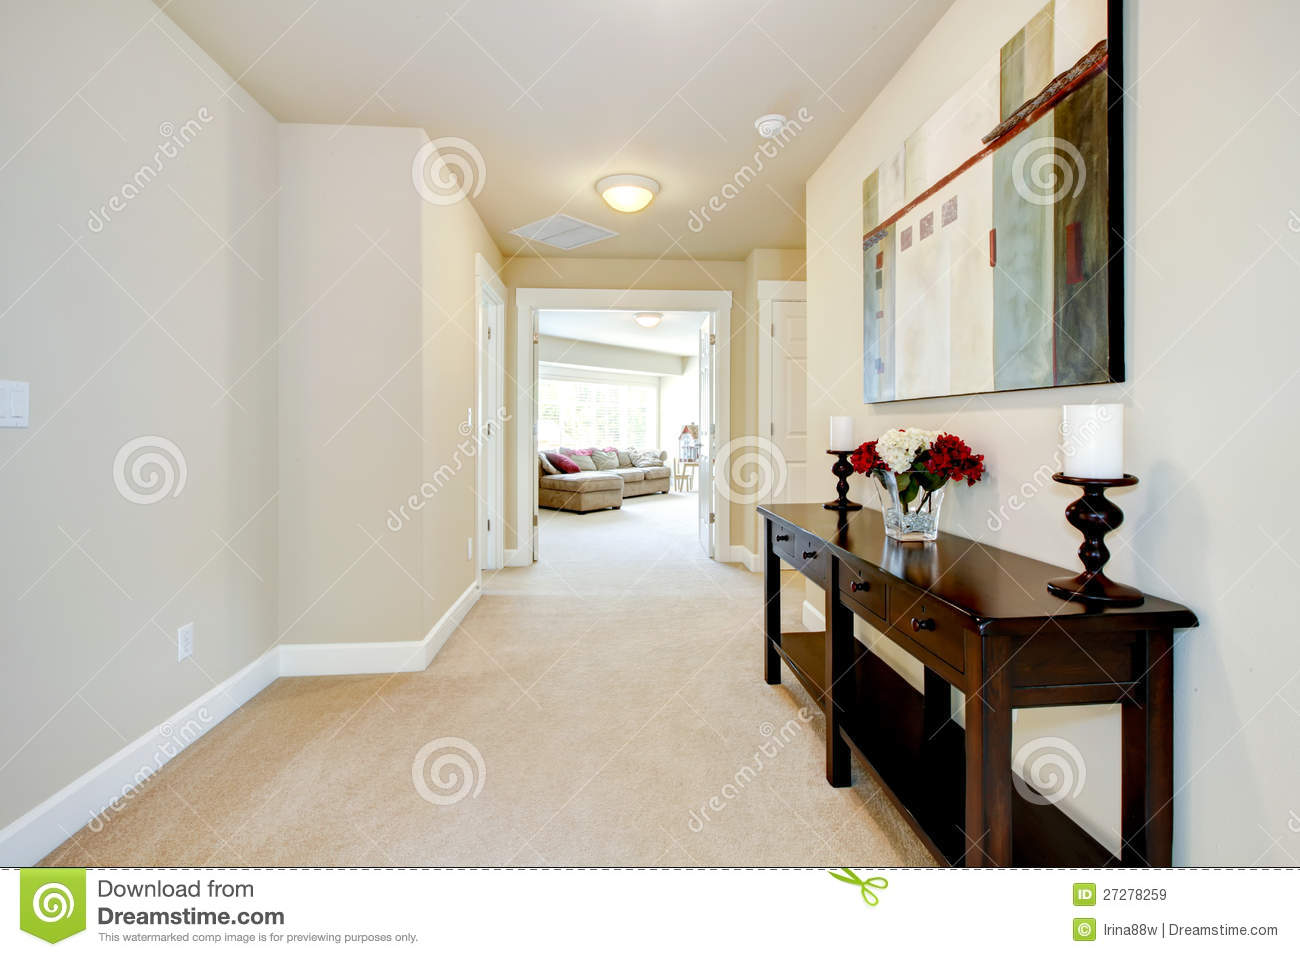 Wandgestaltung Mit Farbe Flur Large Home Hallway With Art And Furniture. Stock Image